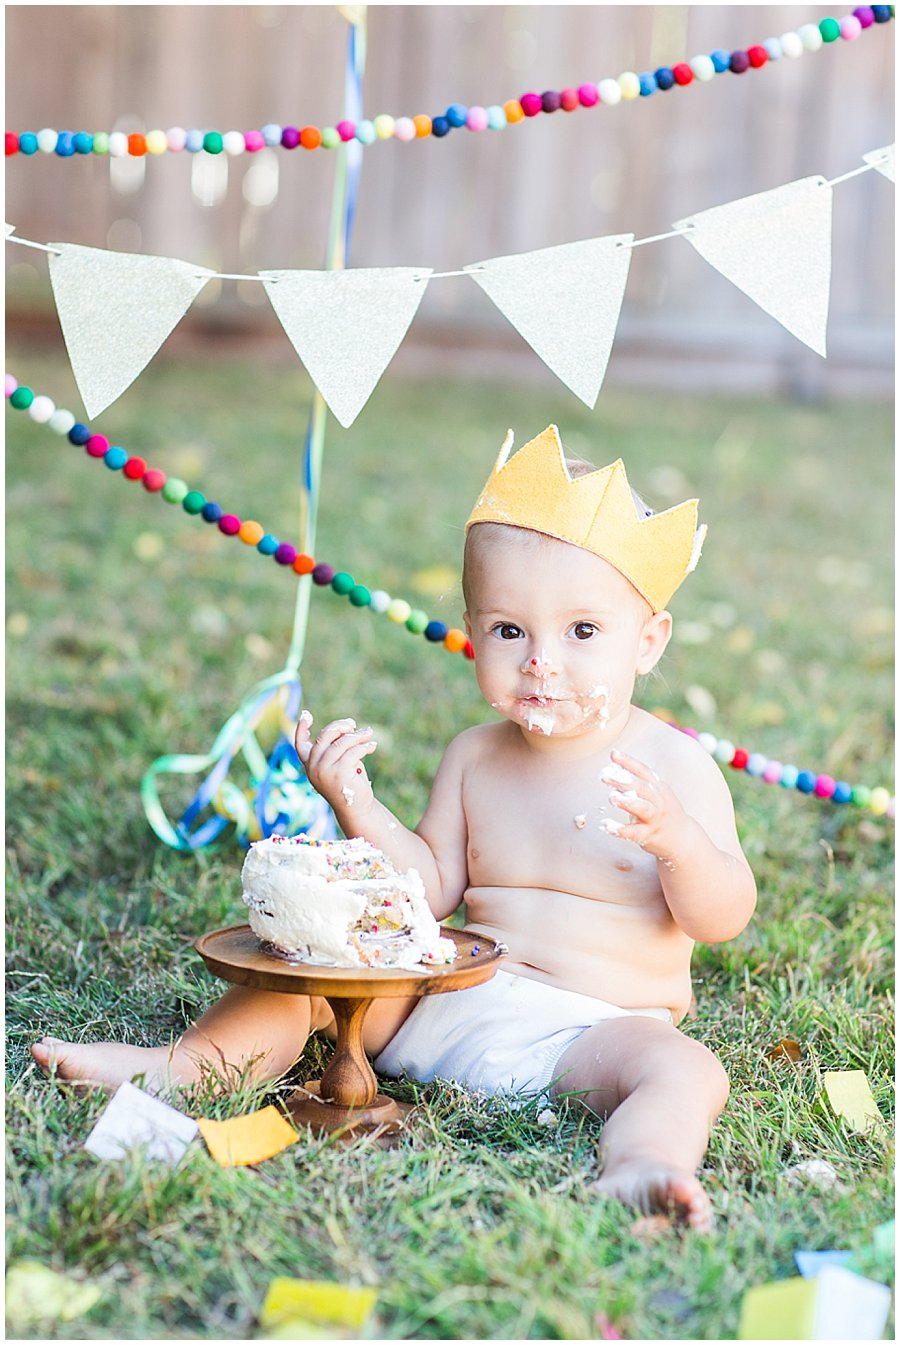 baby-one-year-birthday-cake_smash-17.jpg